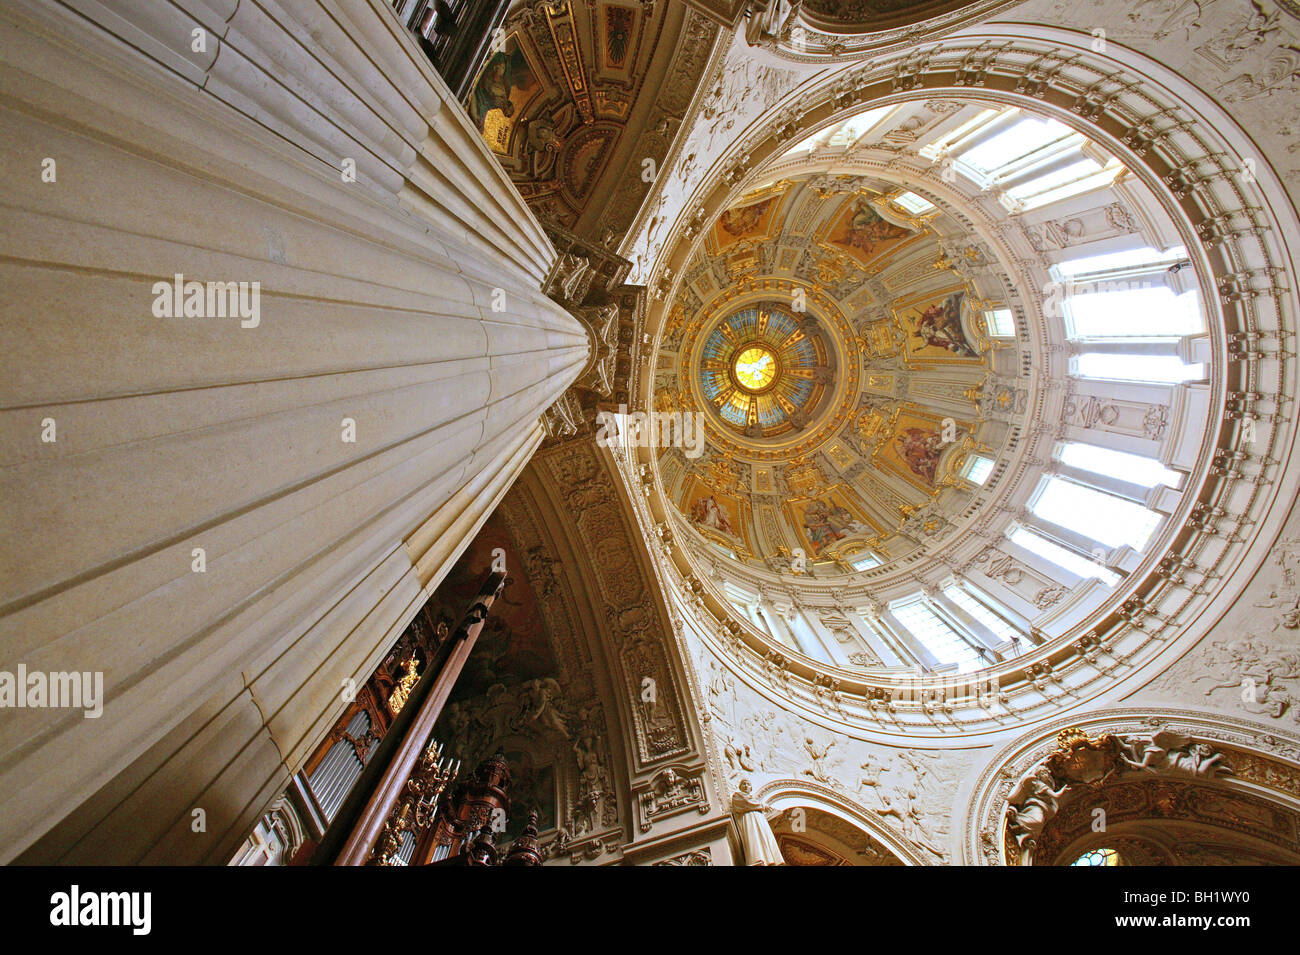 Berliner Dom, Neo-Baroque pulpit and a large Sauer organ, Berlin - Stock Image